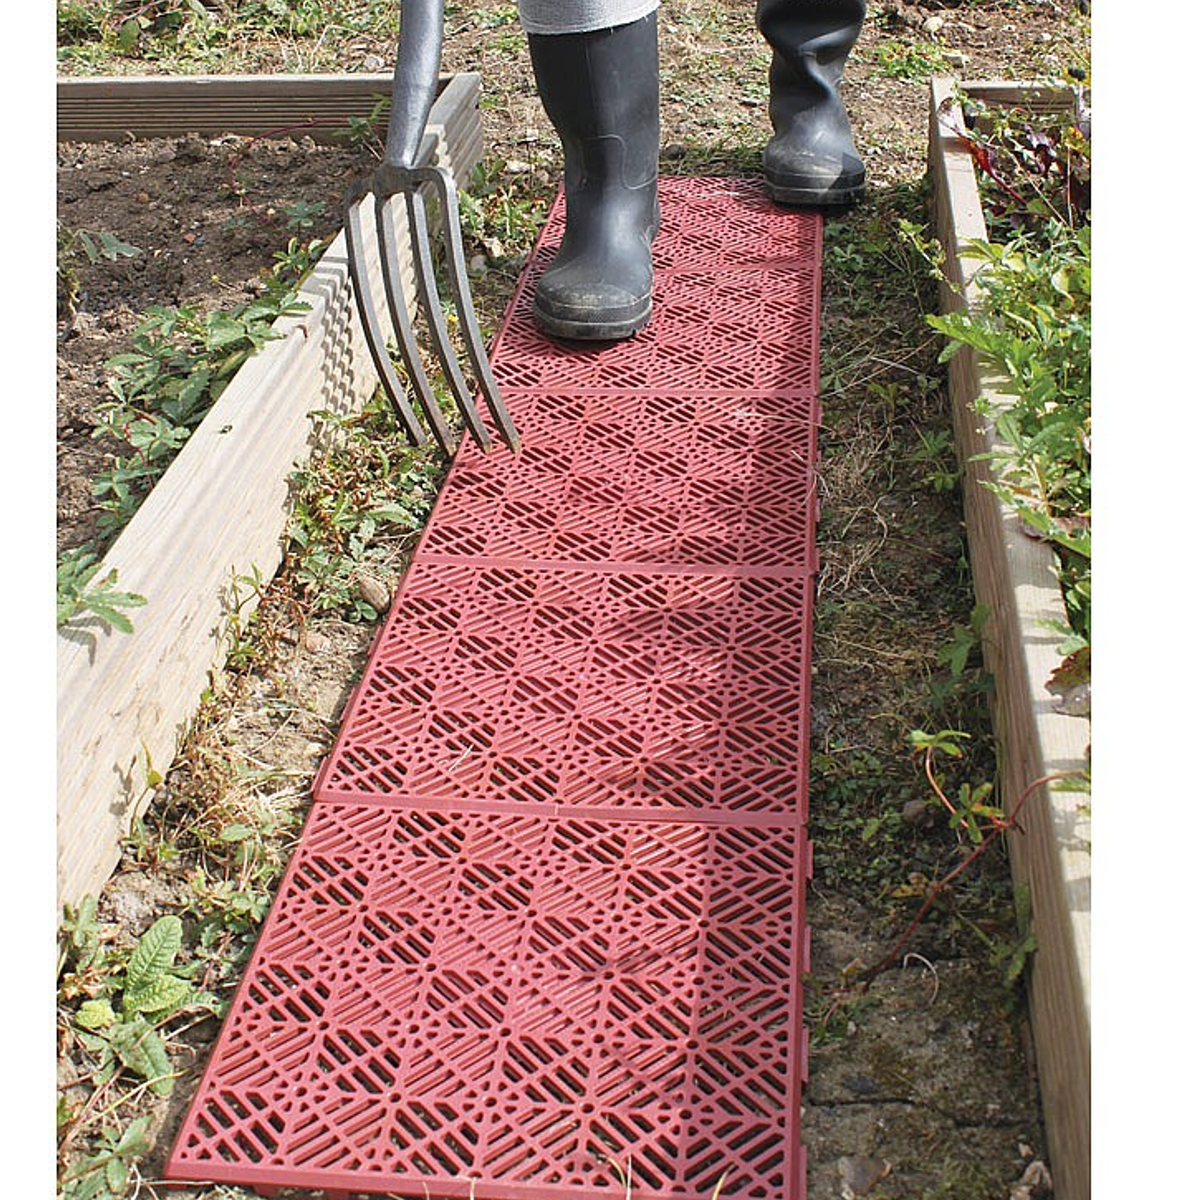 interlocking non slip garden lawn path plastic tiles